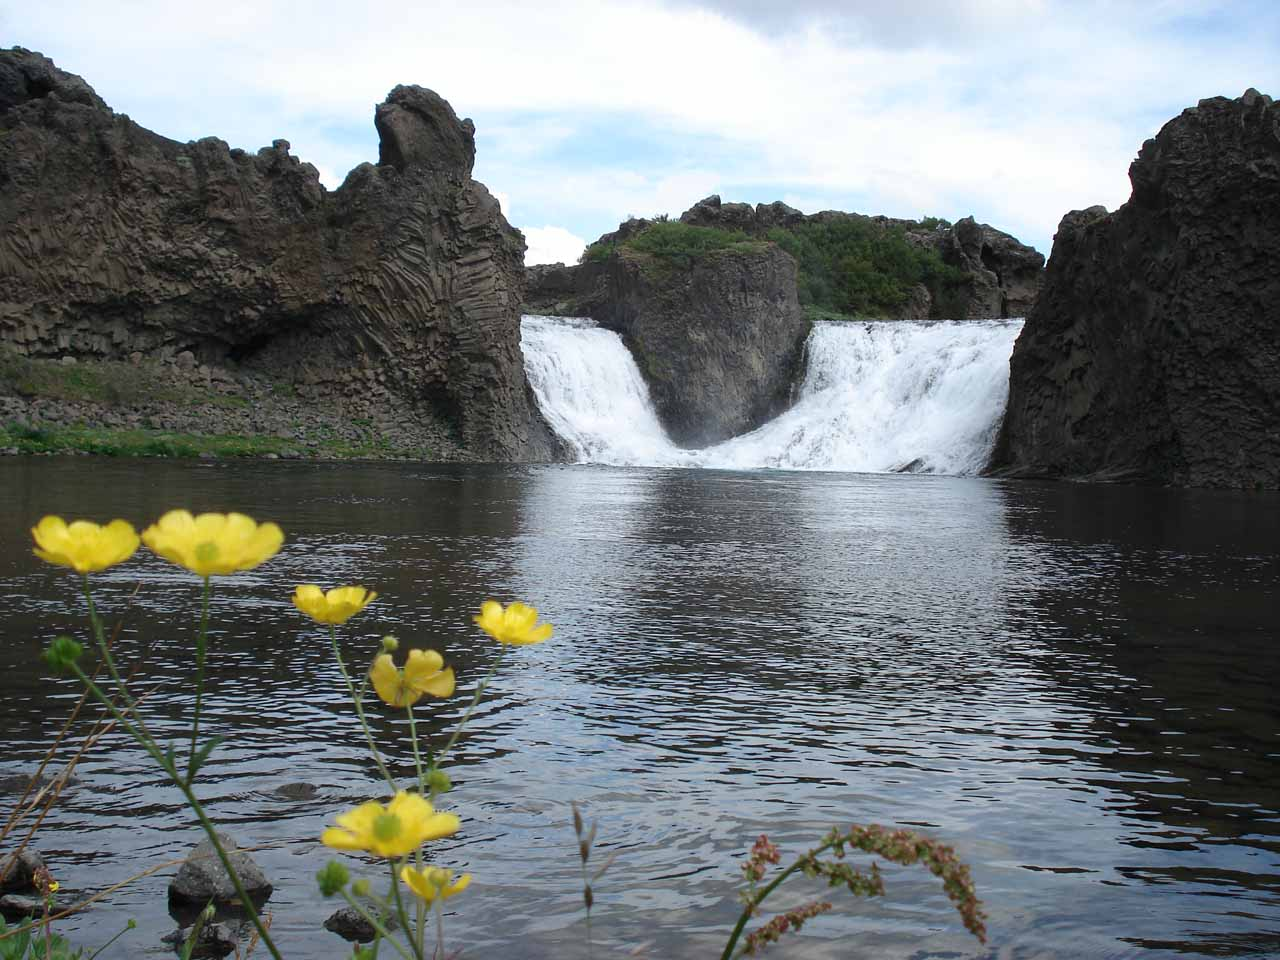 We saw some wildflowers blooming by the plunge pool